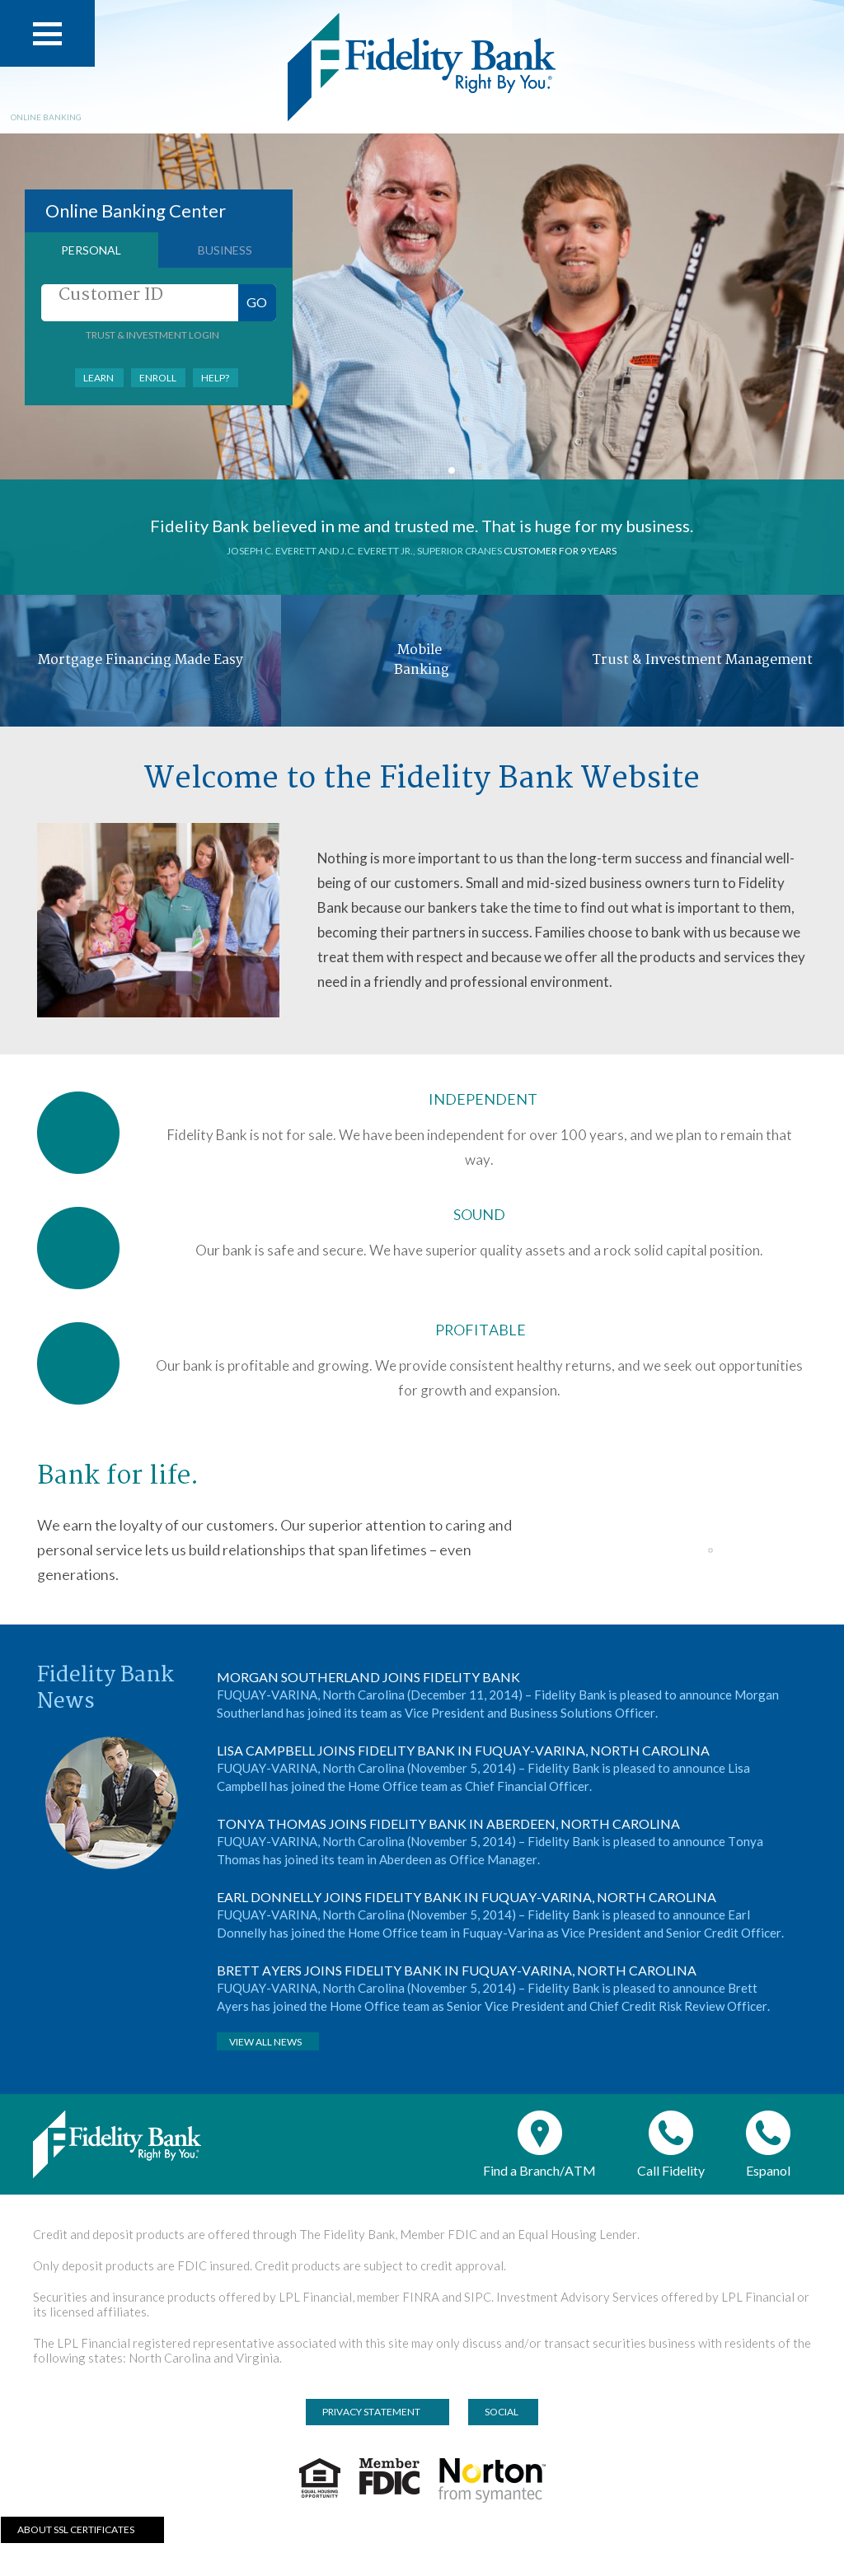 Fidelitybanknc Competitors, Revenue and Employees - Owler Company ...